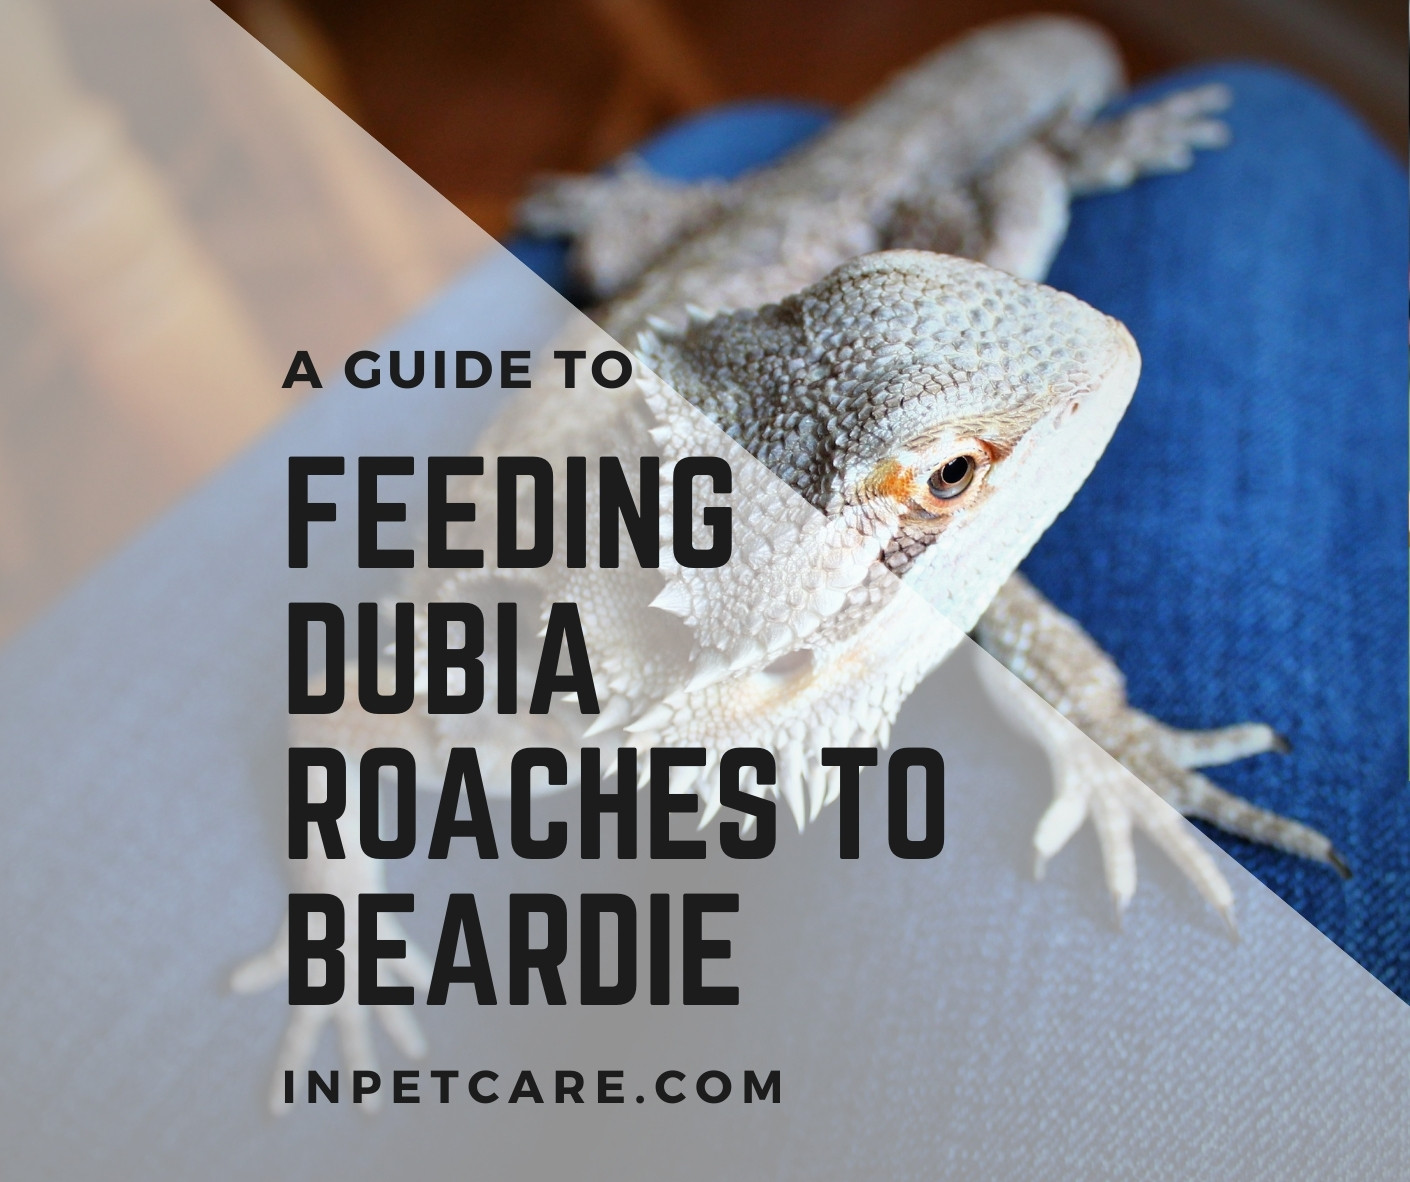 How to Grow and Feed Dubia Roaches to Bearded Dragons